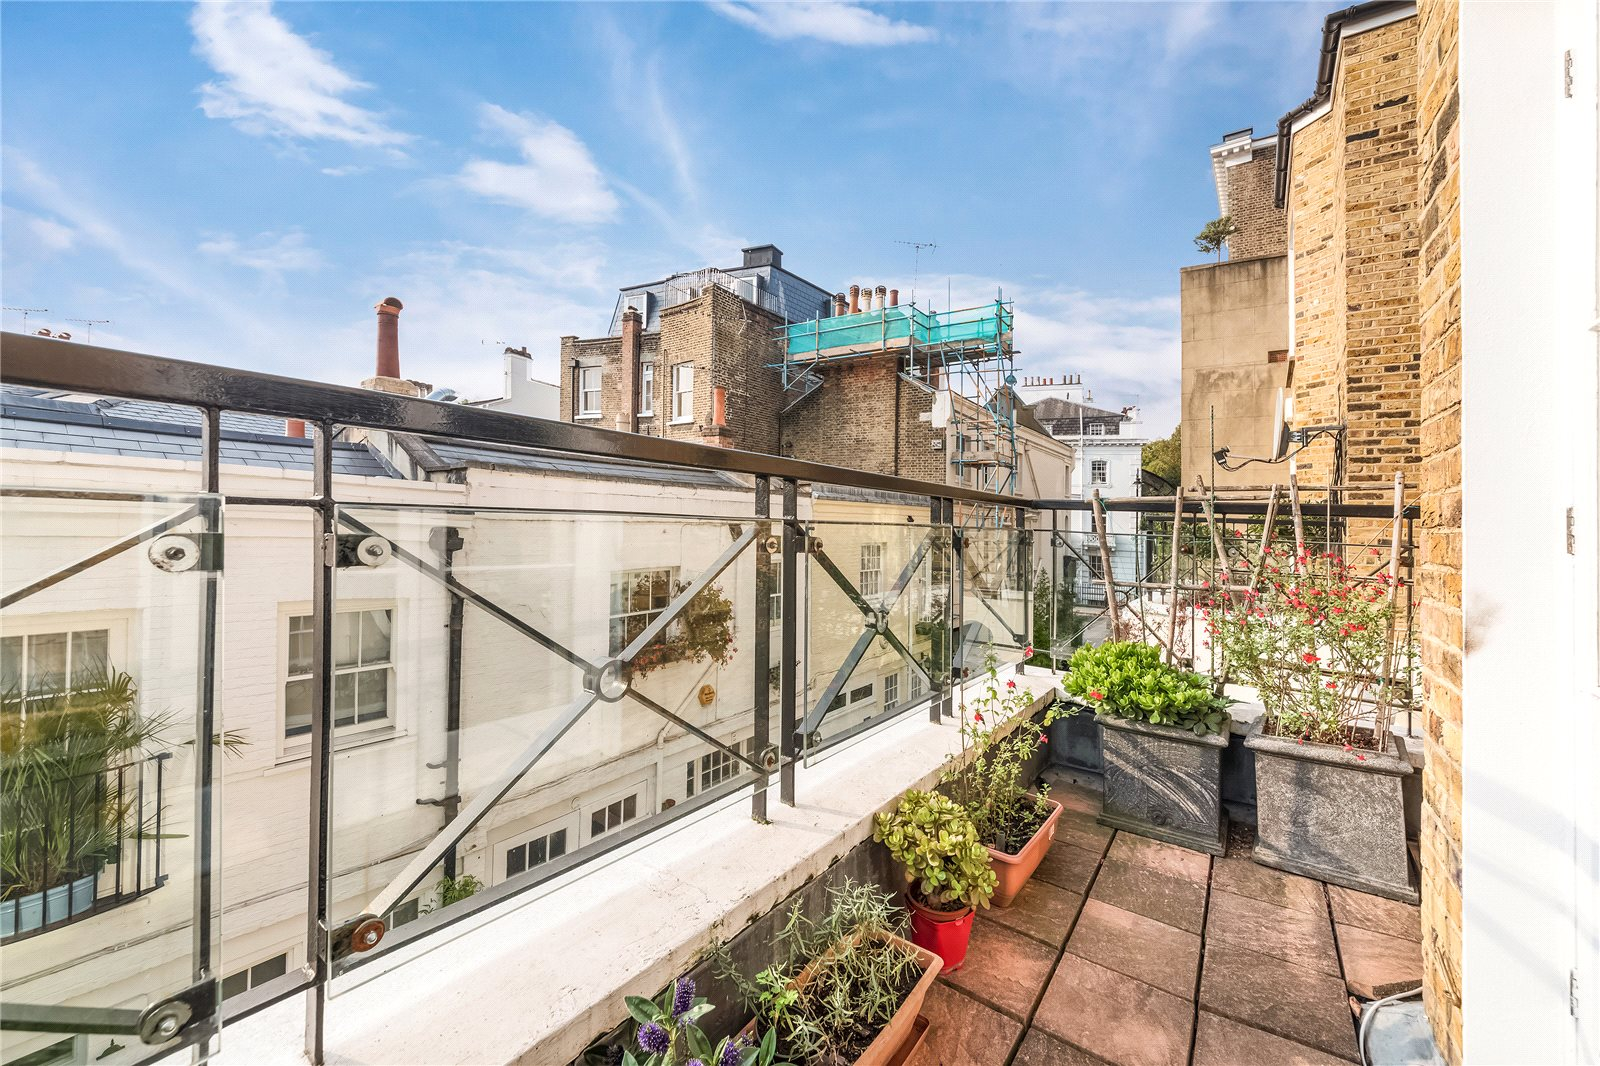 Additional photo for property listing at Stanhope Gardens, South Kensington, London, SW7 South Kensington, London, England